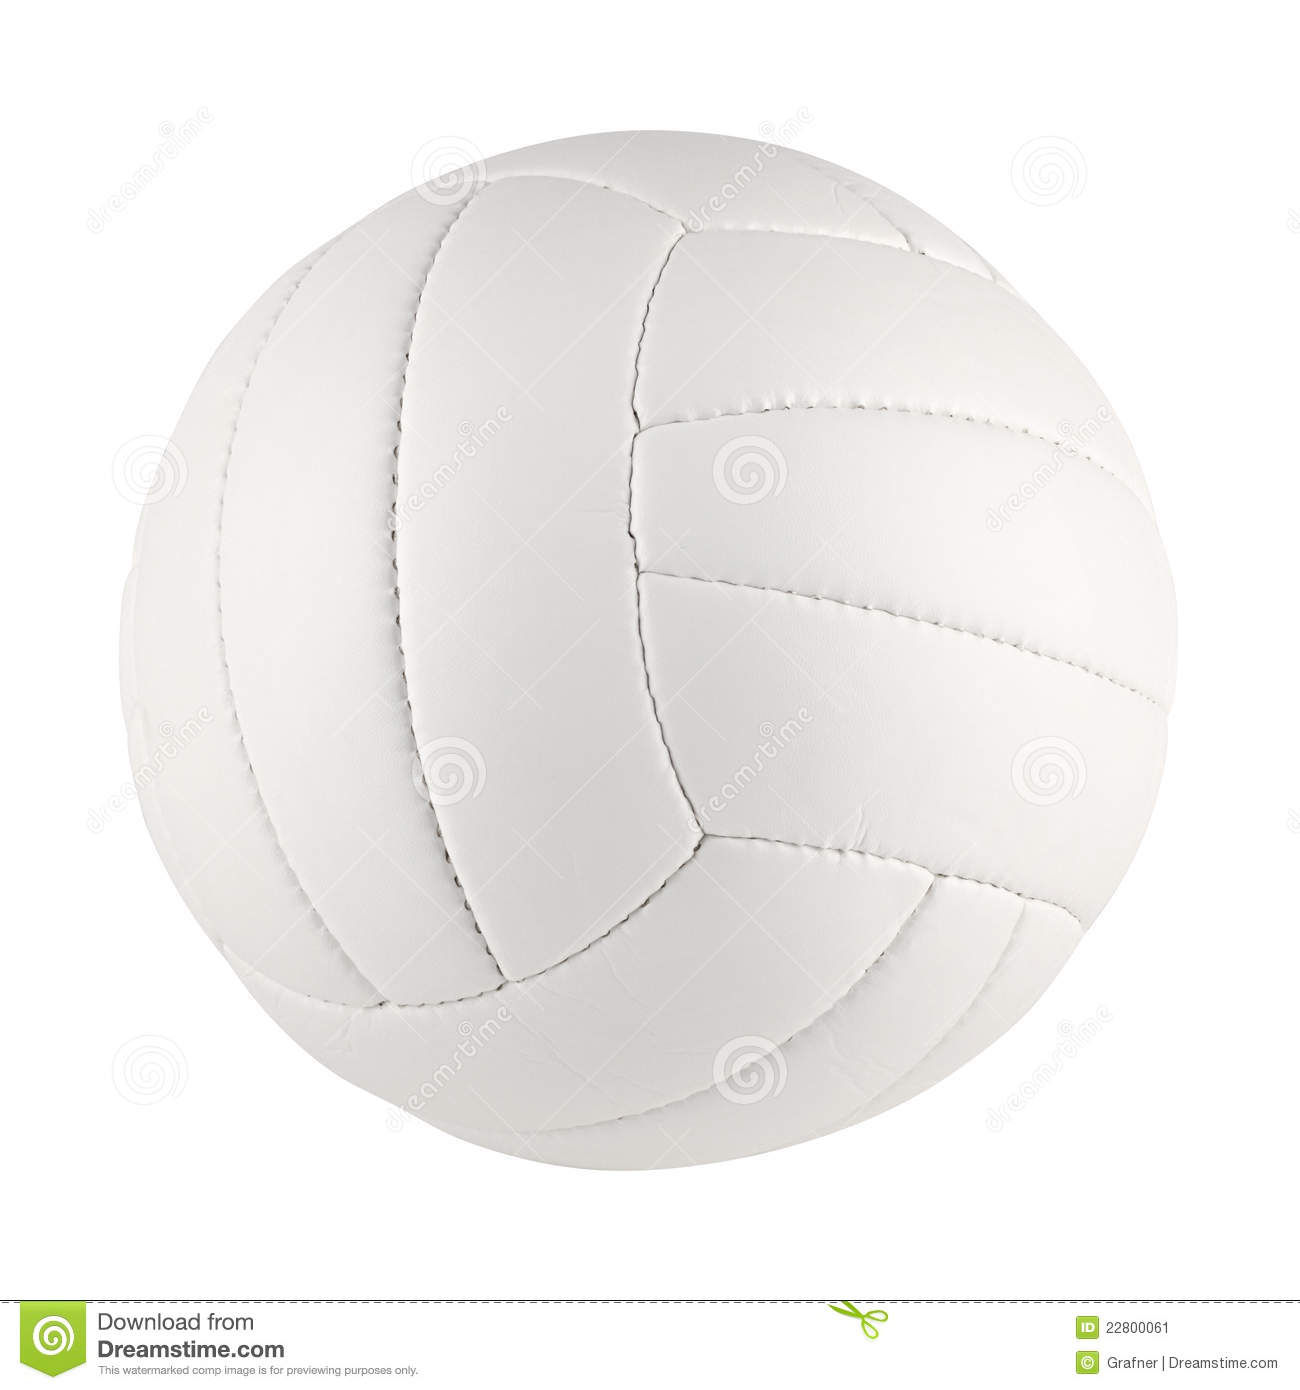 how to make a volleyball ball